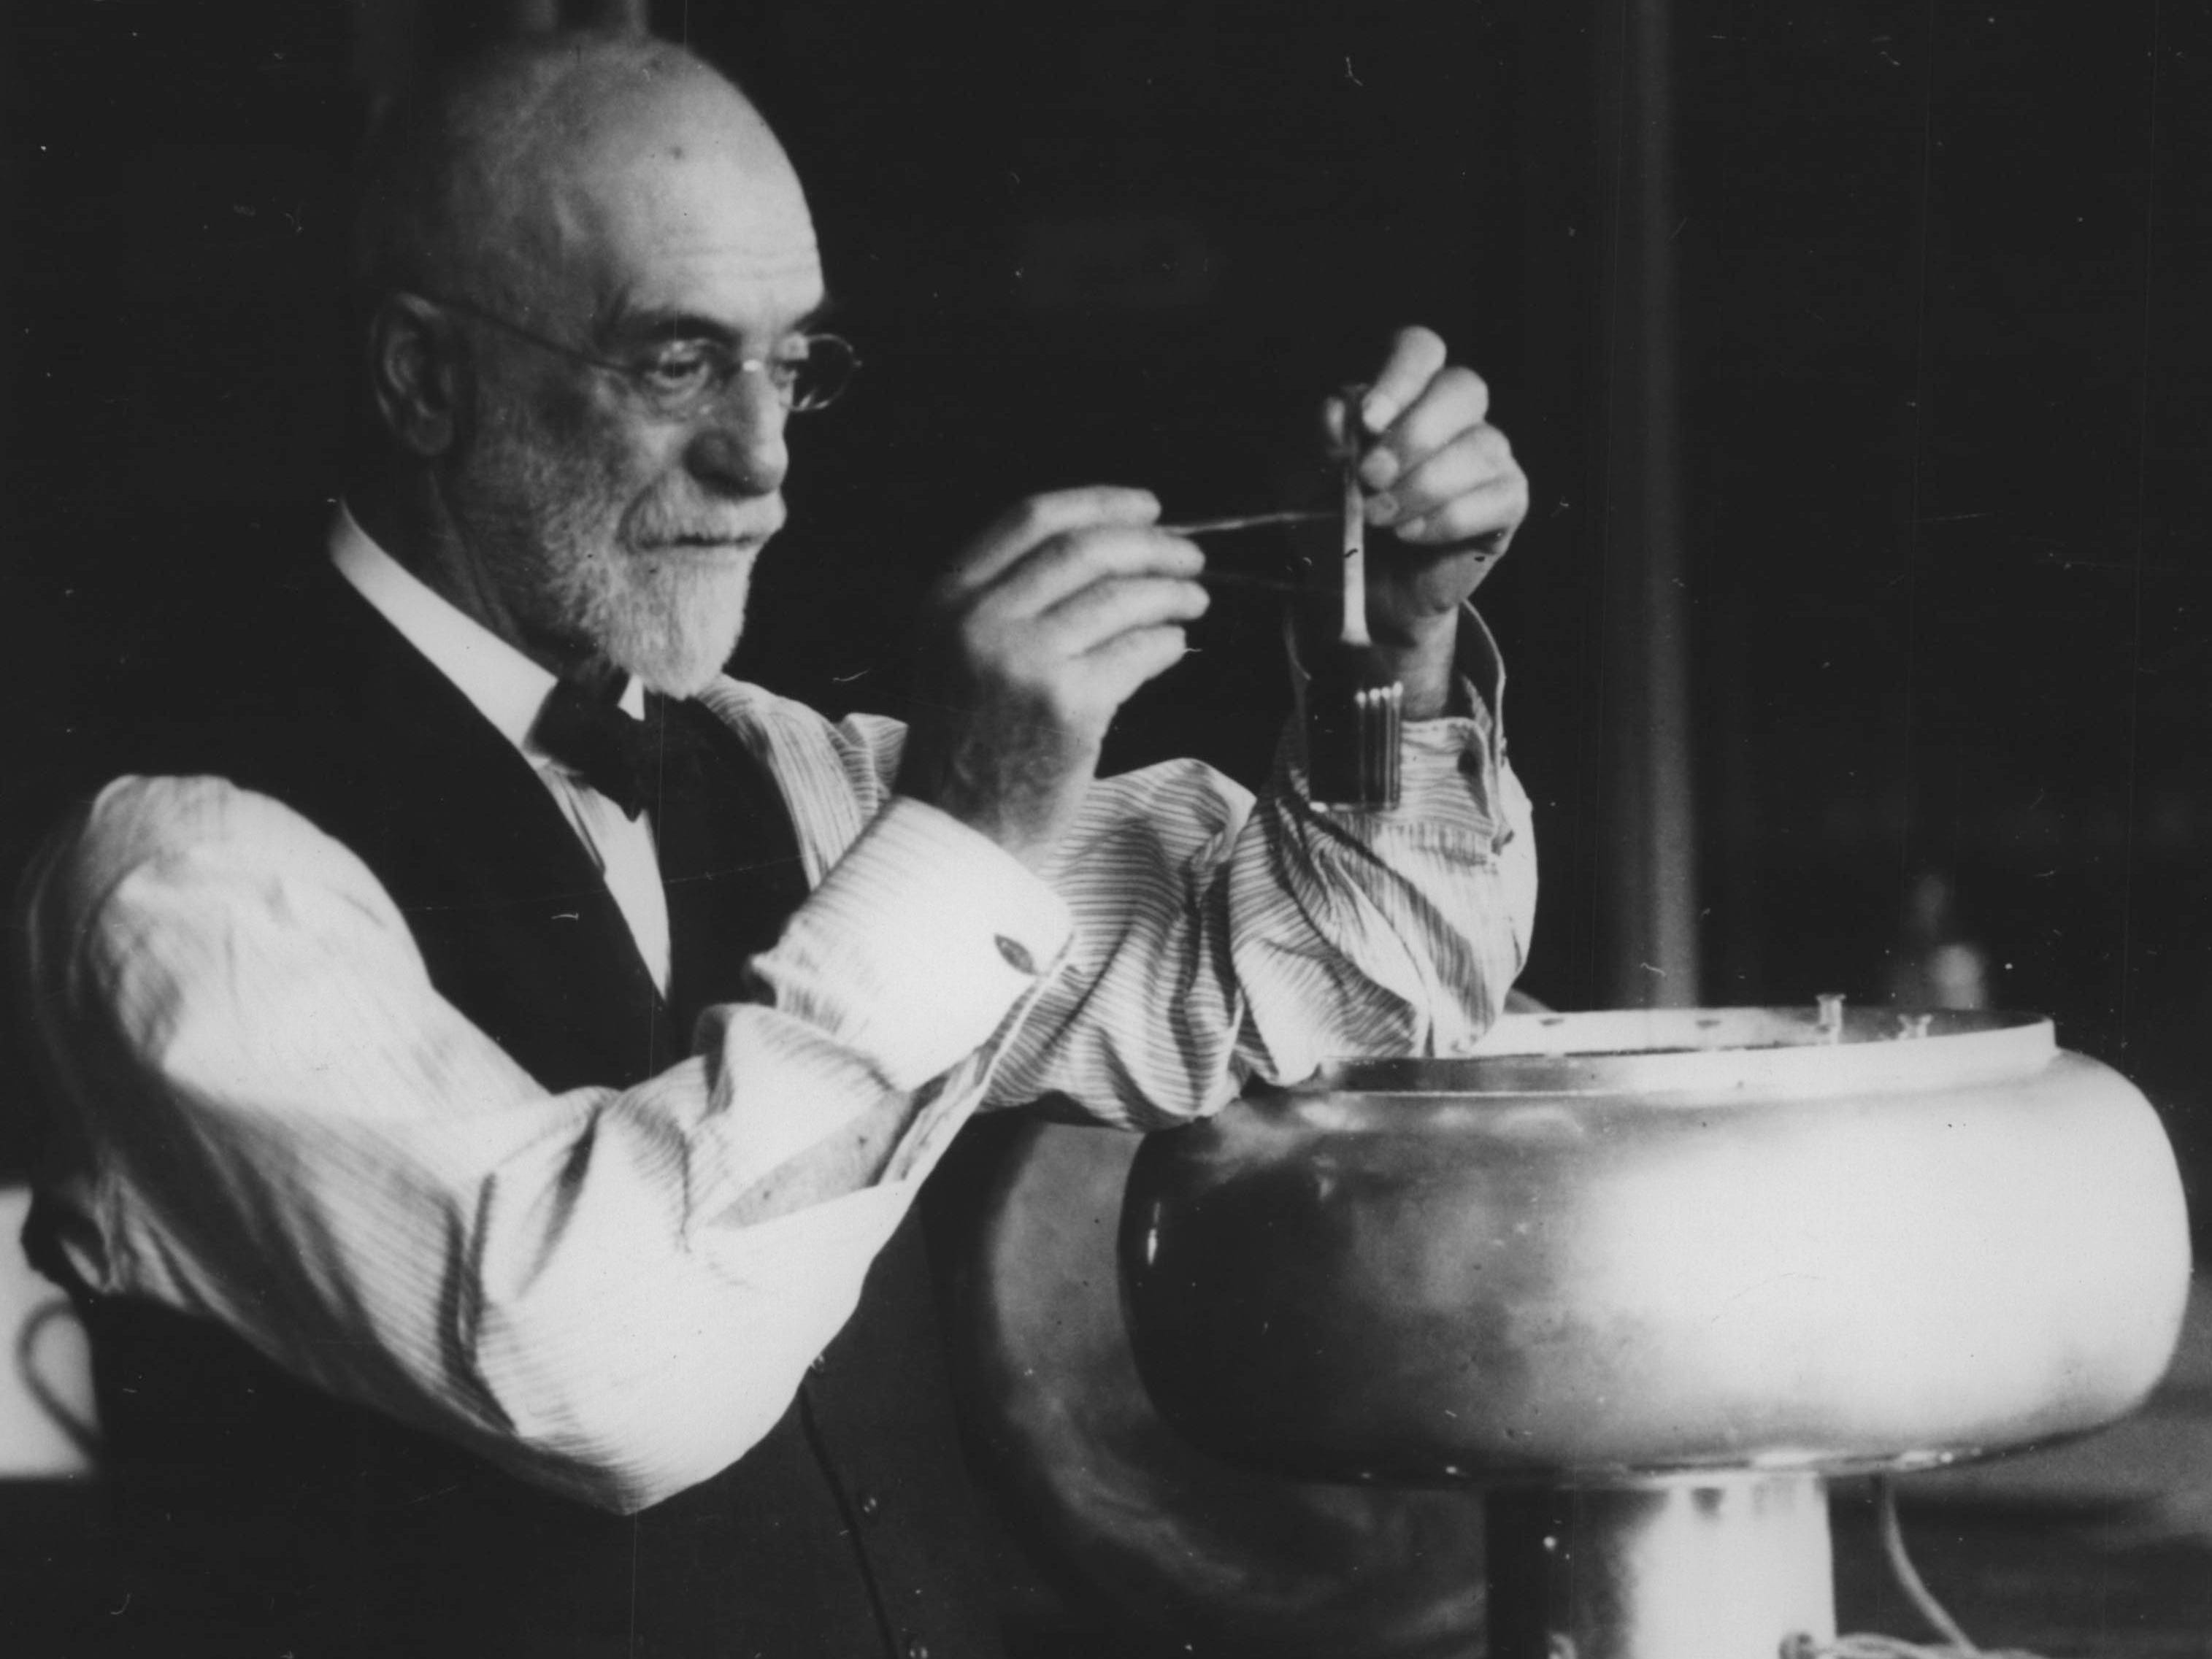 Circa 1926: In 1890, a butterfat tester developed by UW-Madison professor Stephen Babcock gave farmers, creameries and cheesemakers a simple and fast way to determine the quality of milk.   Babcock is shown with his electric  butterfat tester.